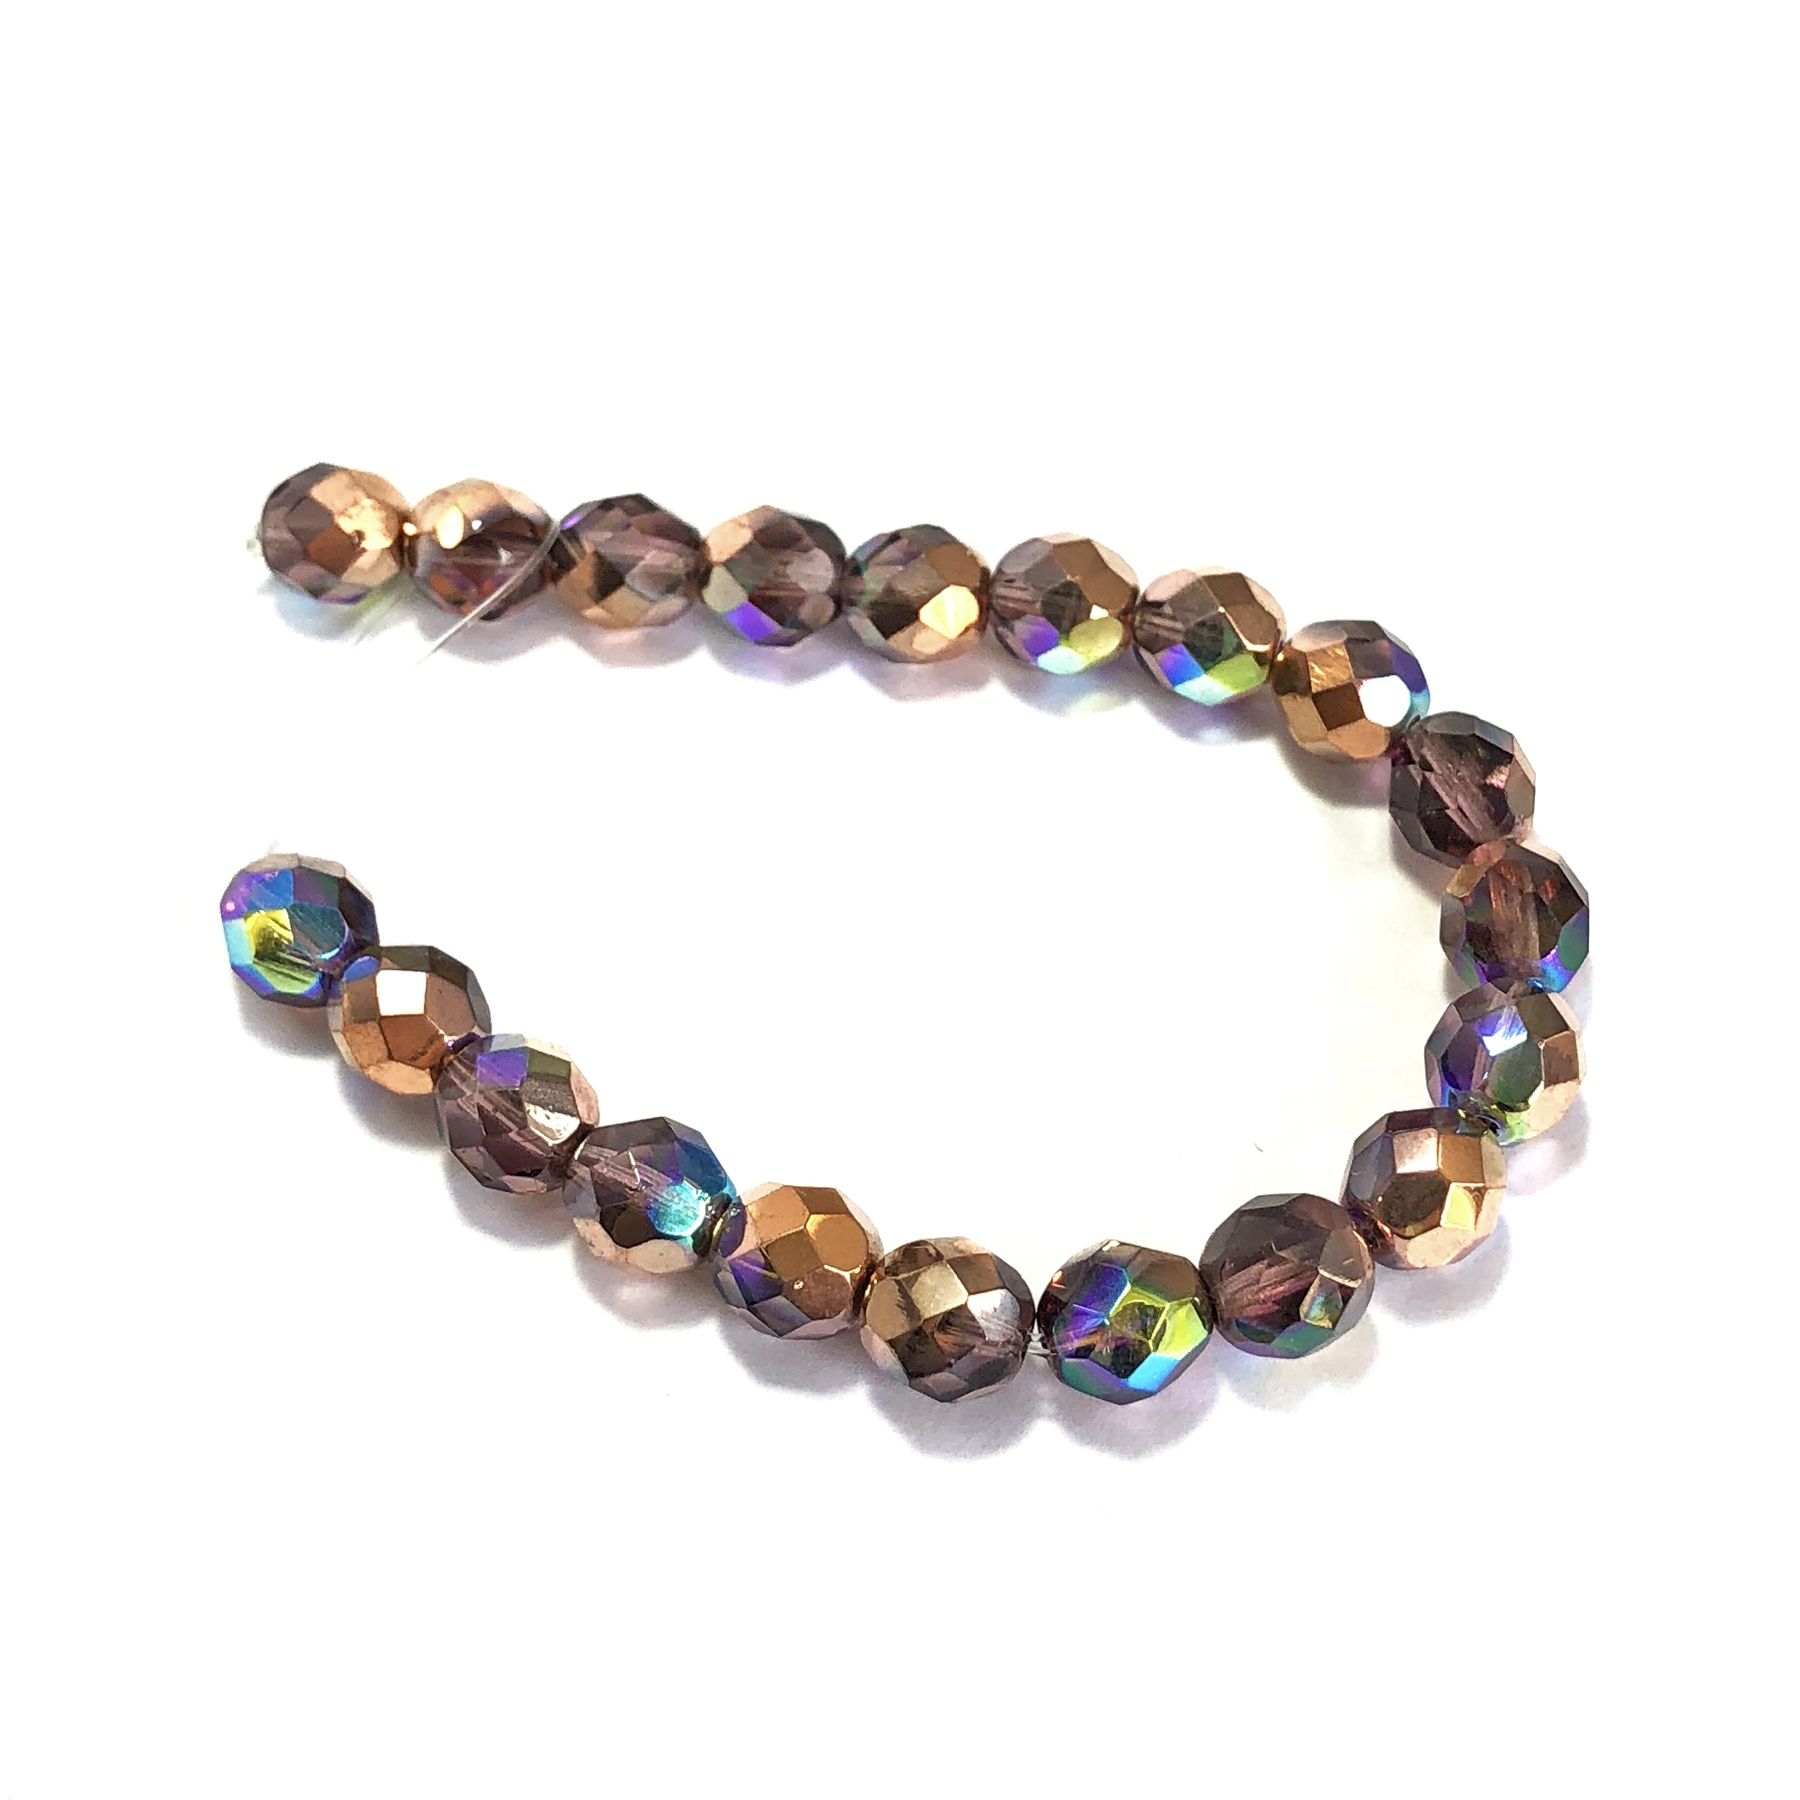 Czech glass amethyst copper rainbow beads, fire polished, amethyst copper, rainbow beads, glass beads, faceted beads, beading supplies, jewelry making, jewelry supplies, B'sue Boutiques, vintage supplies, crystal glass, amethyst beads, 8mm, 09518